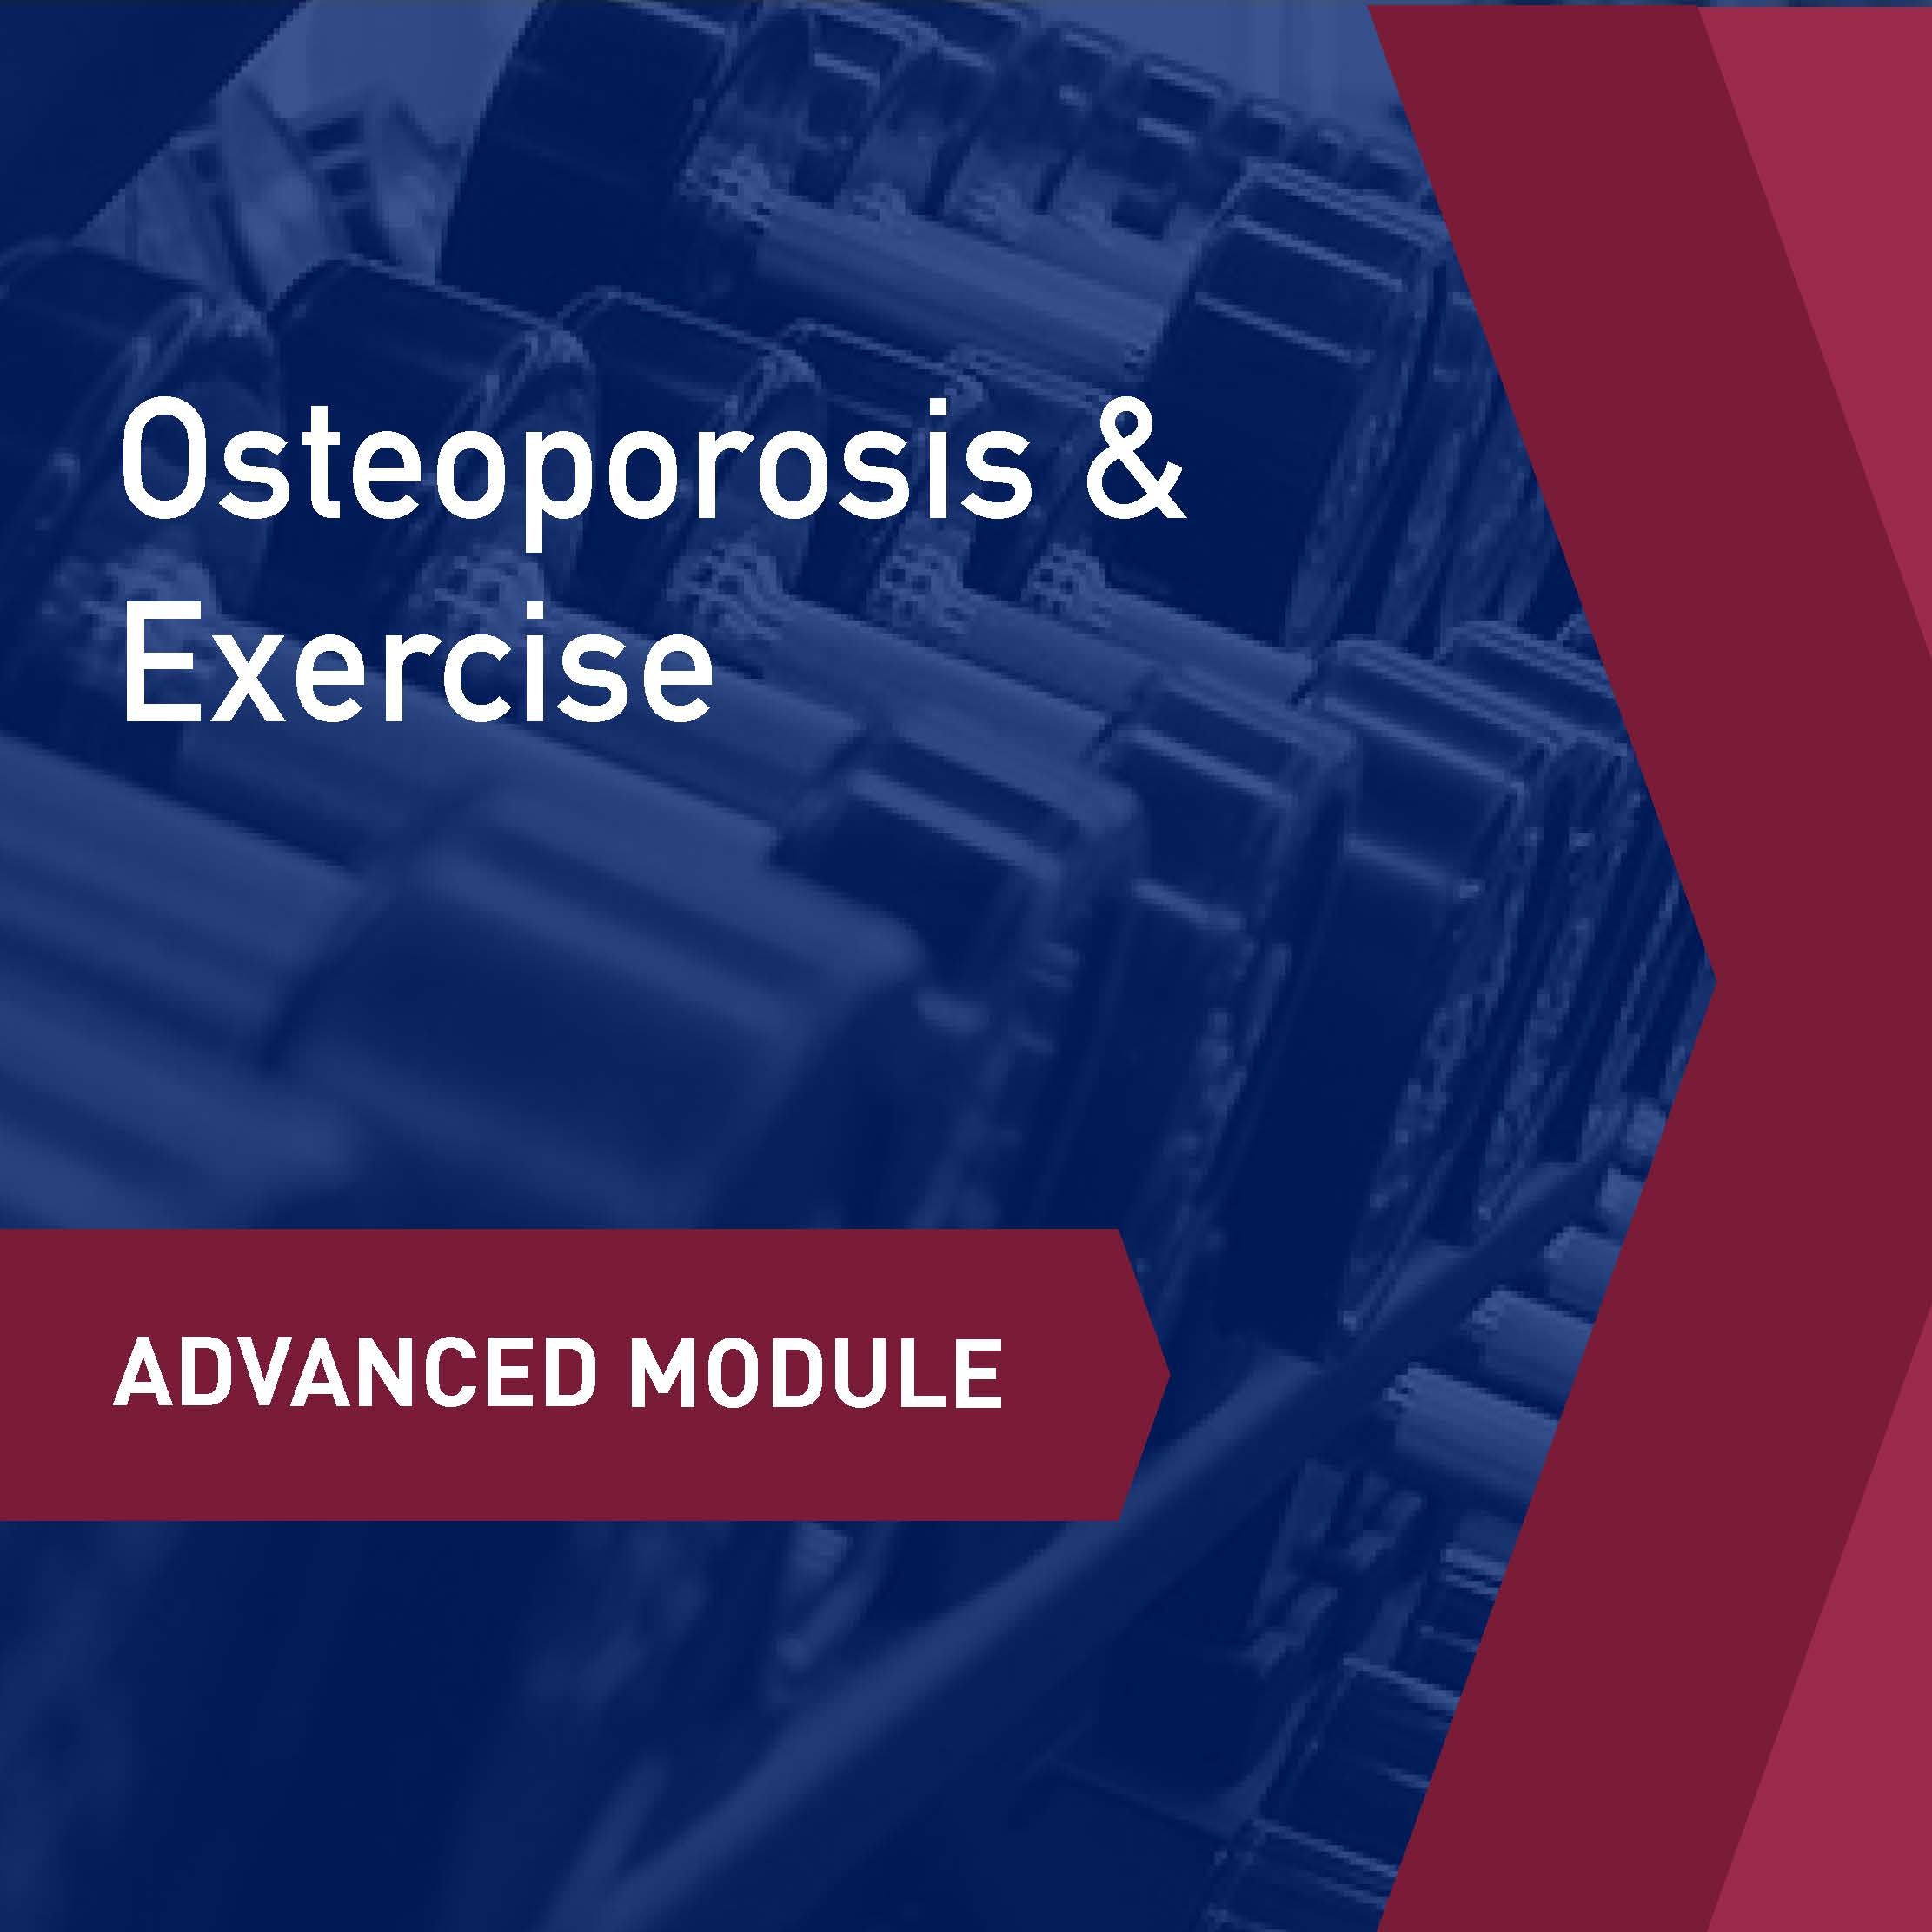 Advanced Learning Module: Osteoporosis & Exercise